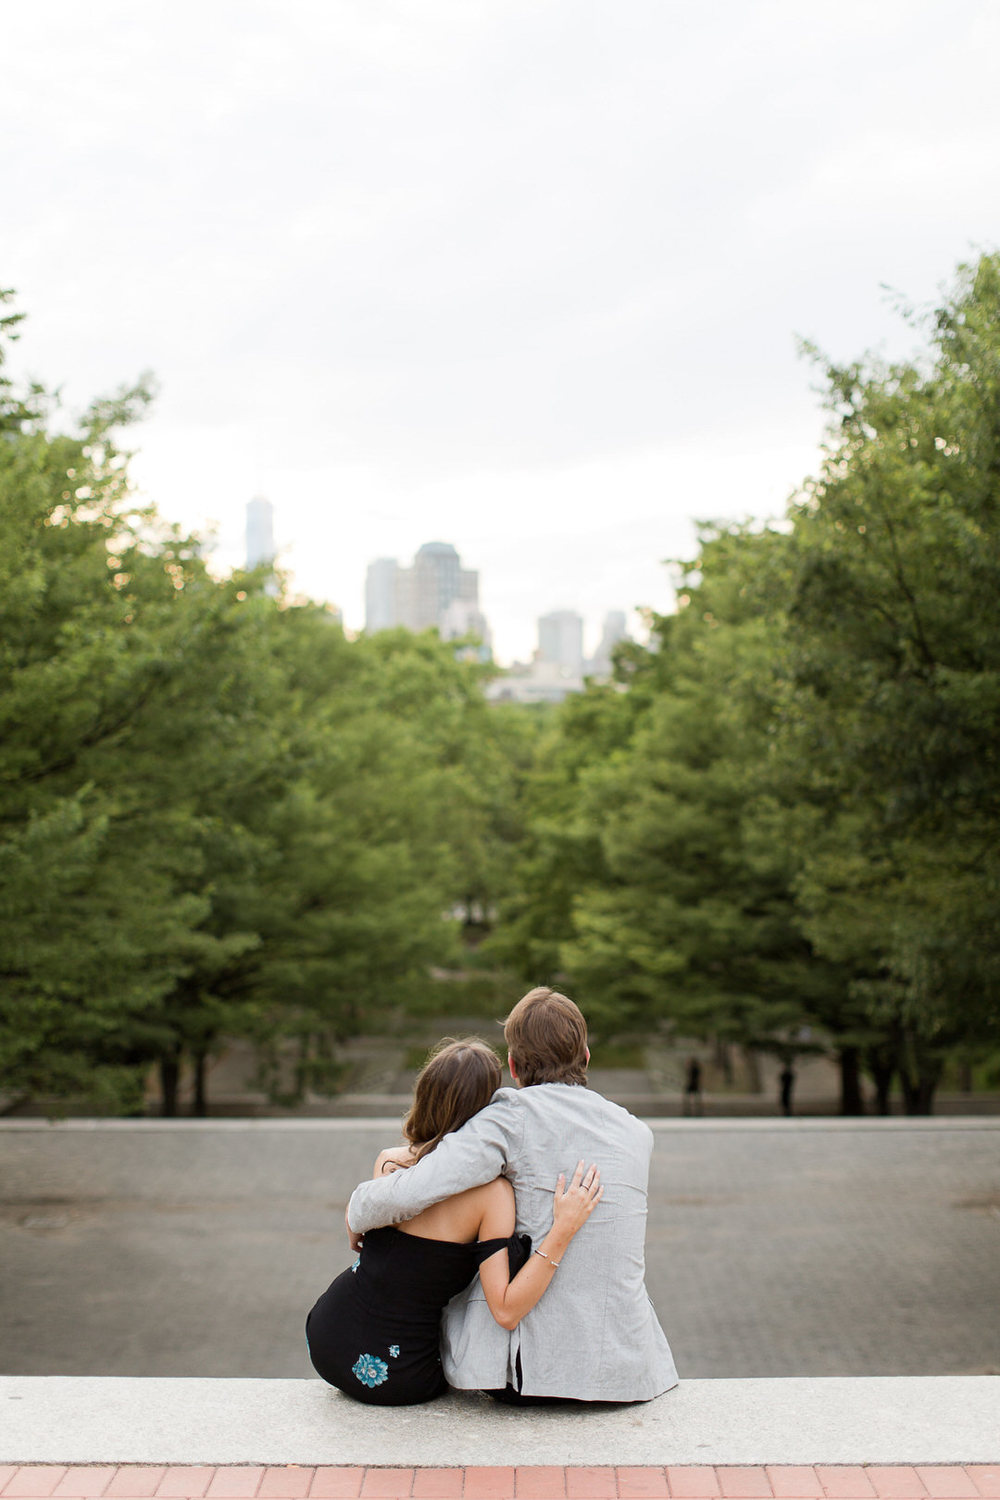 Melissa Kruse Photography - Meghan & Pete Engagement Photos-173.jpg